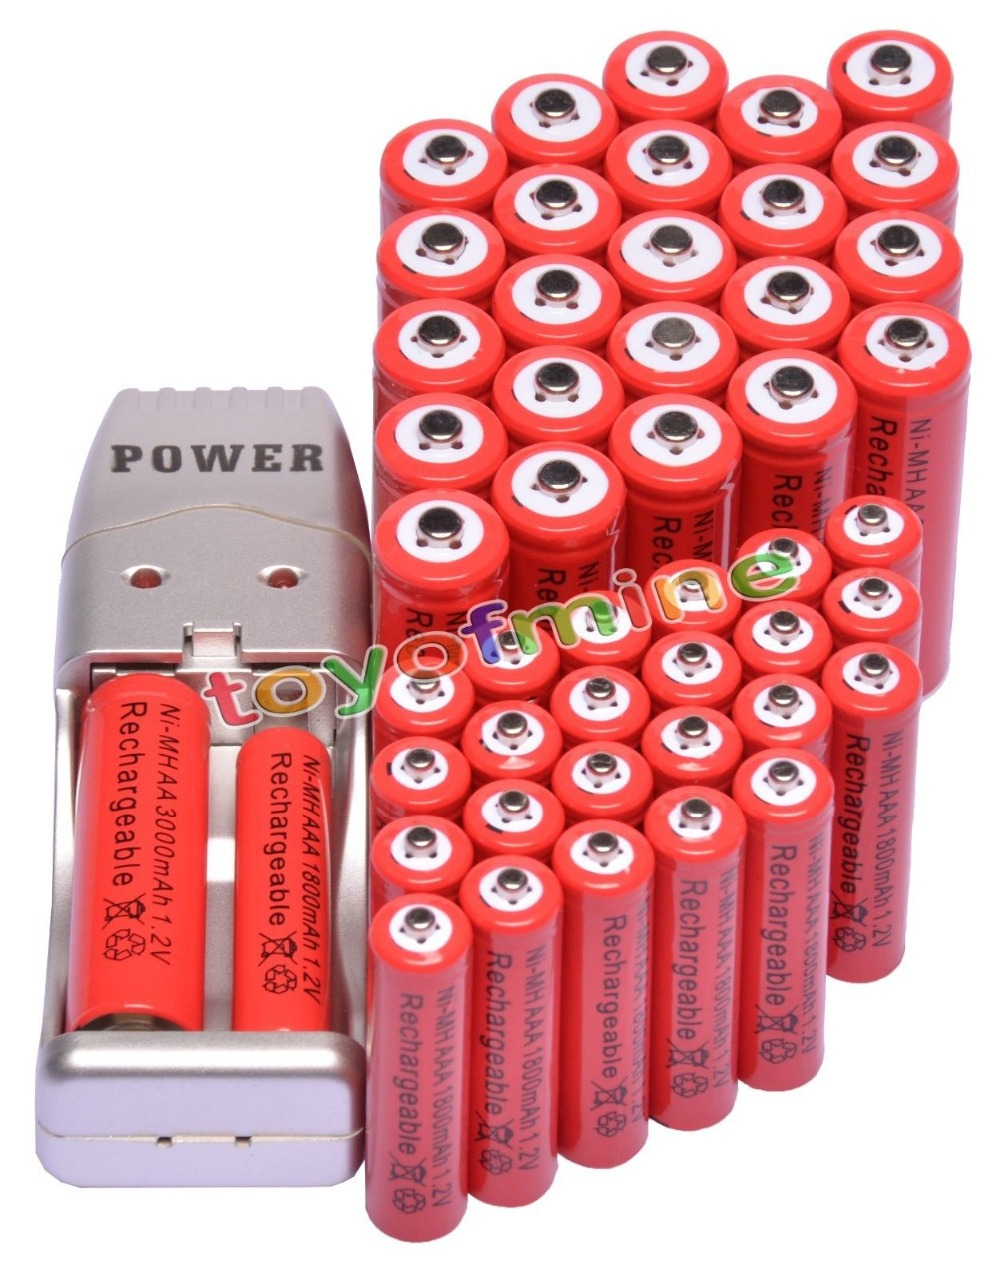 24x AA 3000mAh + 24x AAA 1800mAh 1.2V Red Color Rechargeable Battery+ 2A 3A Battery USB Charger